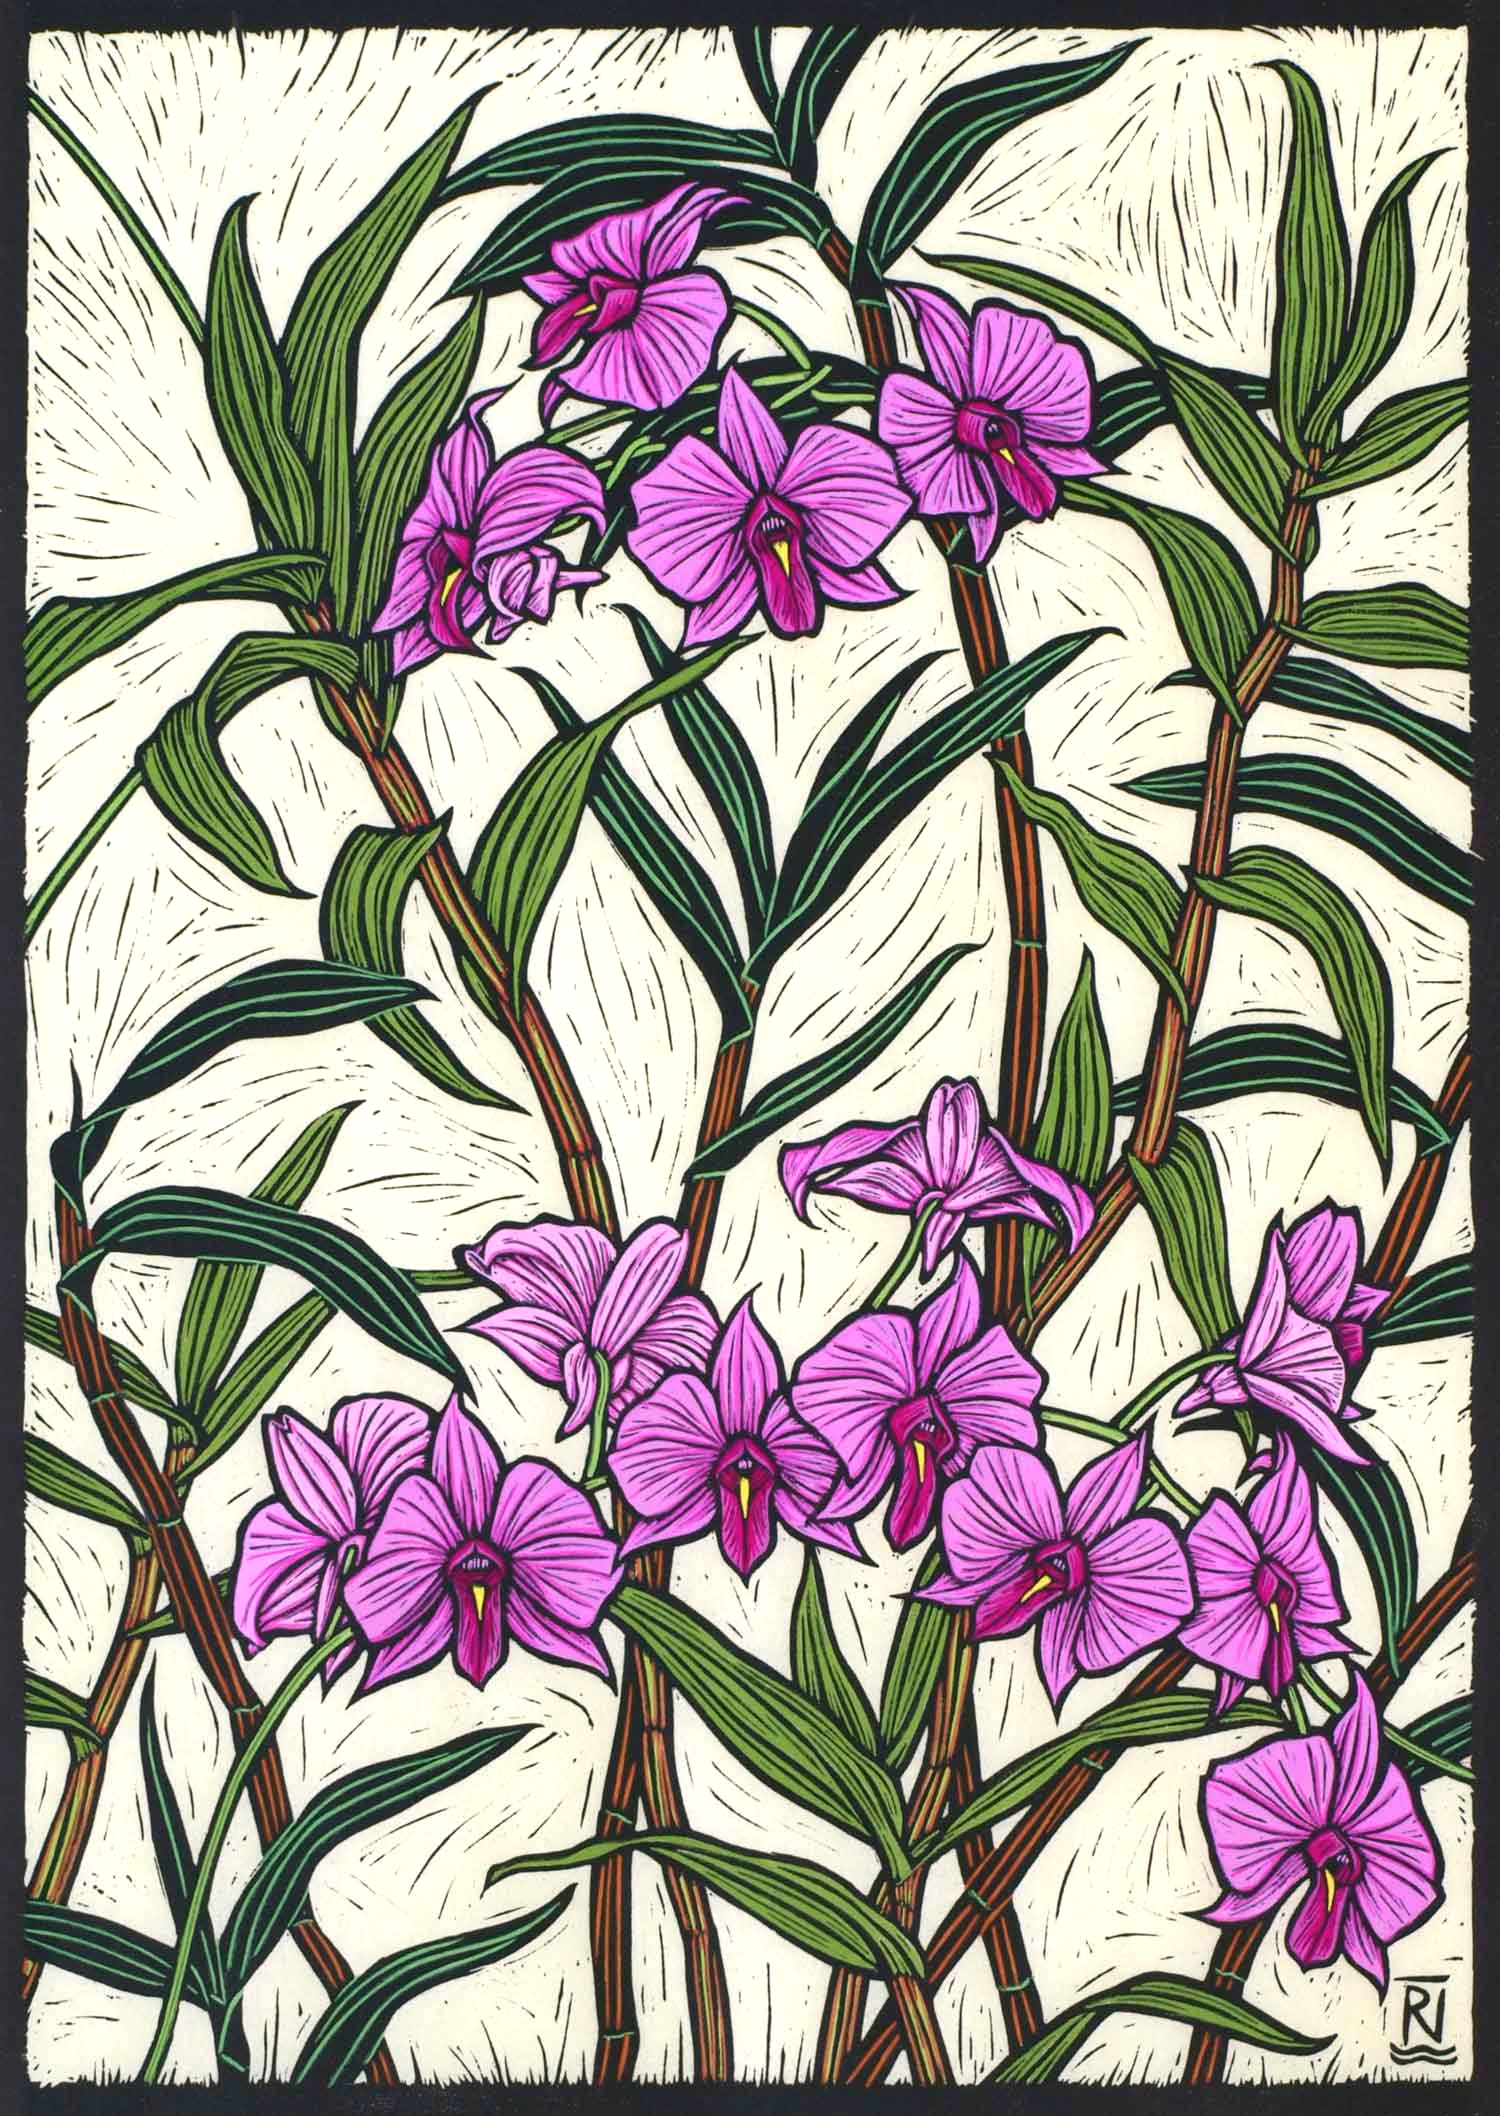 COOKTOWN ORCHID  47.5 X 33.5 CM EDITION OF 50  HAND COLOURED LINOCUT ON HANDMADE JAPANESE PAPER  $1,100